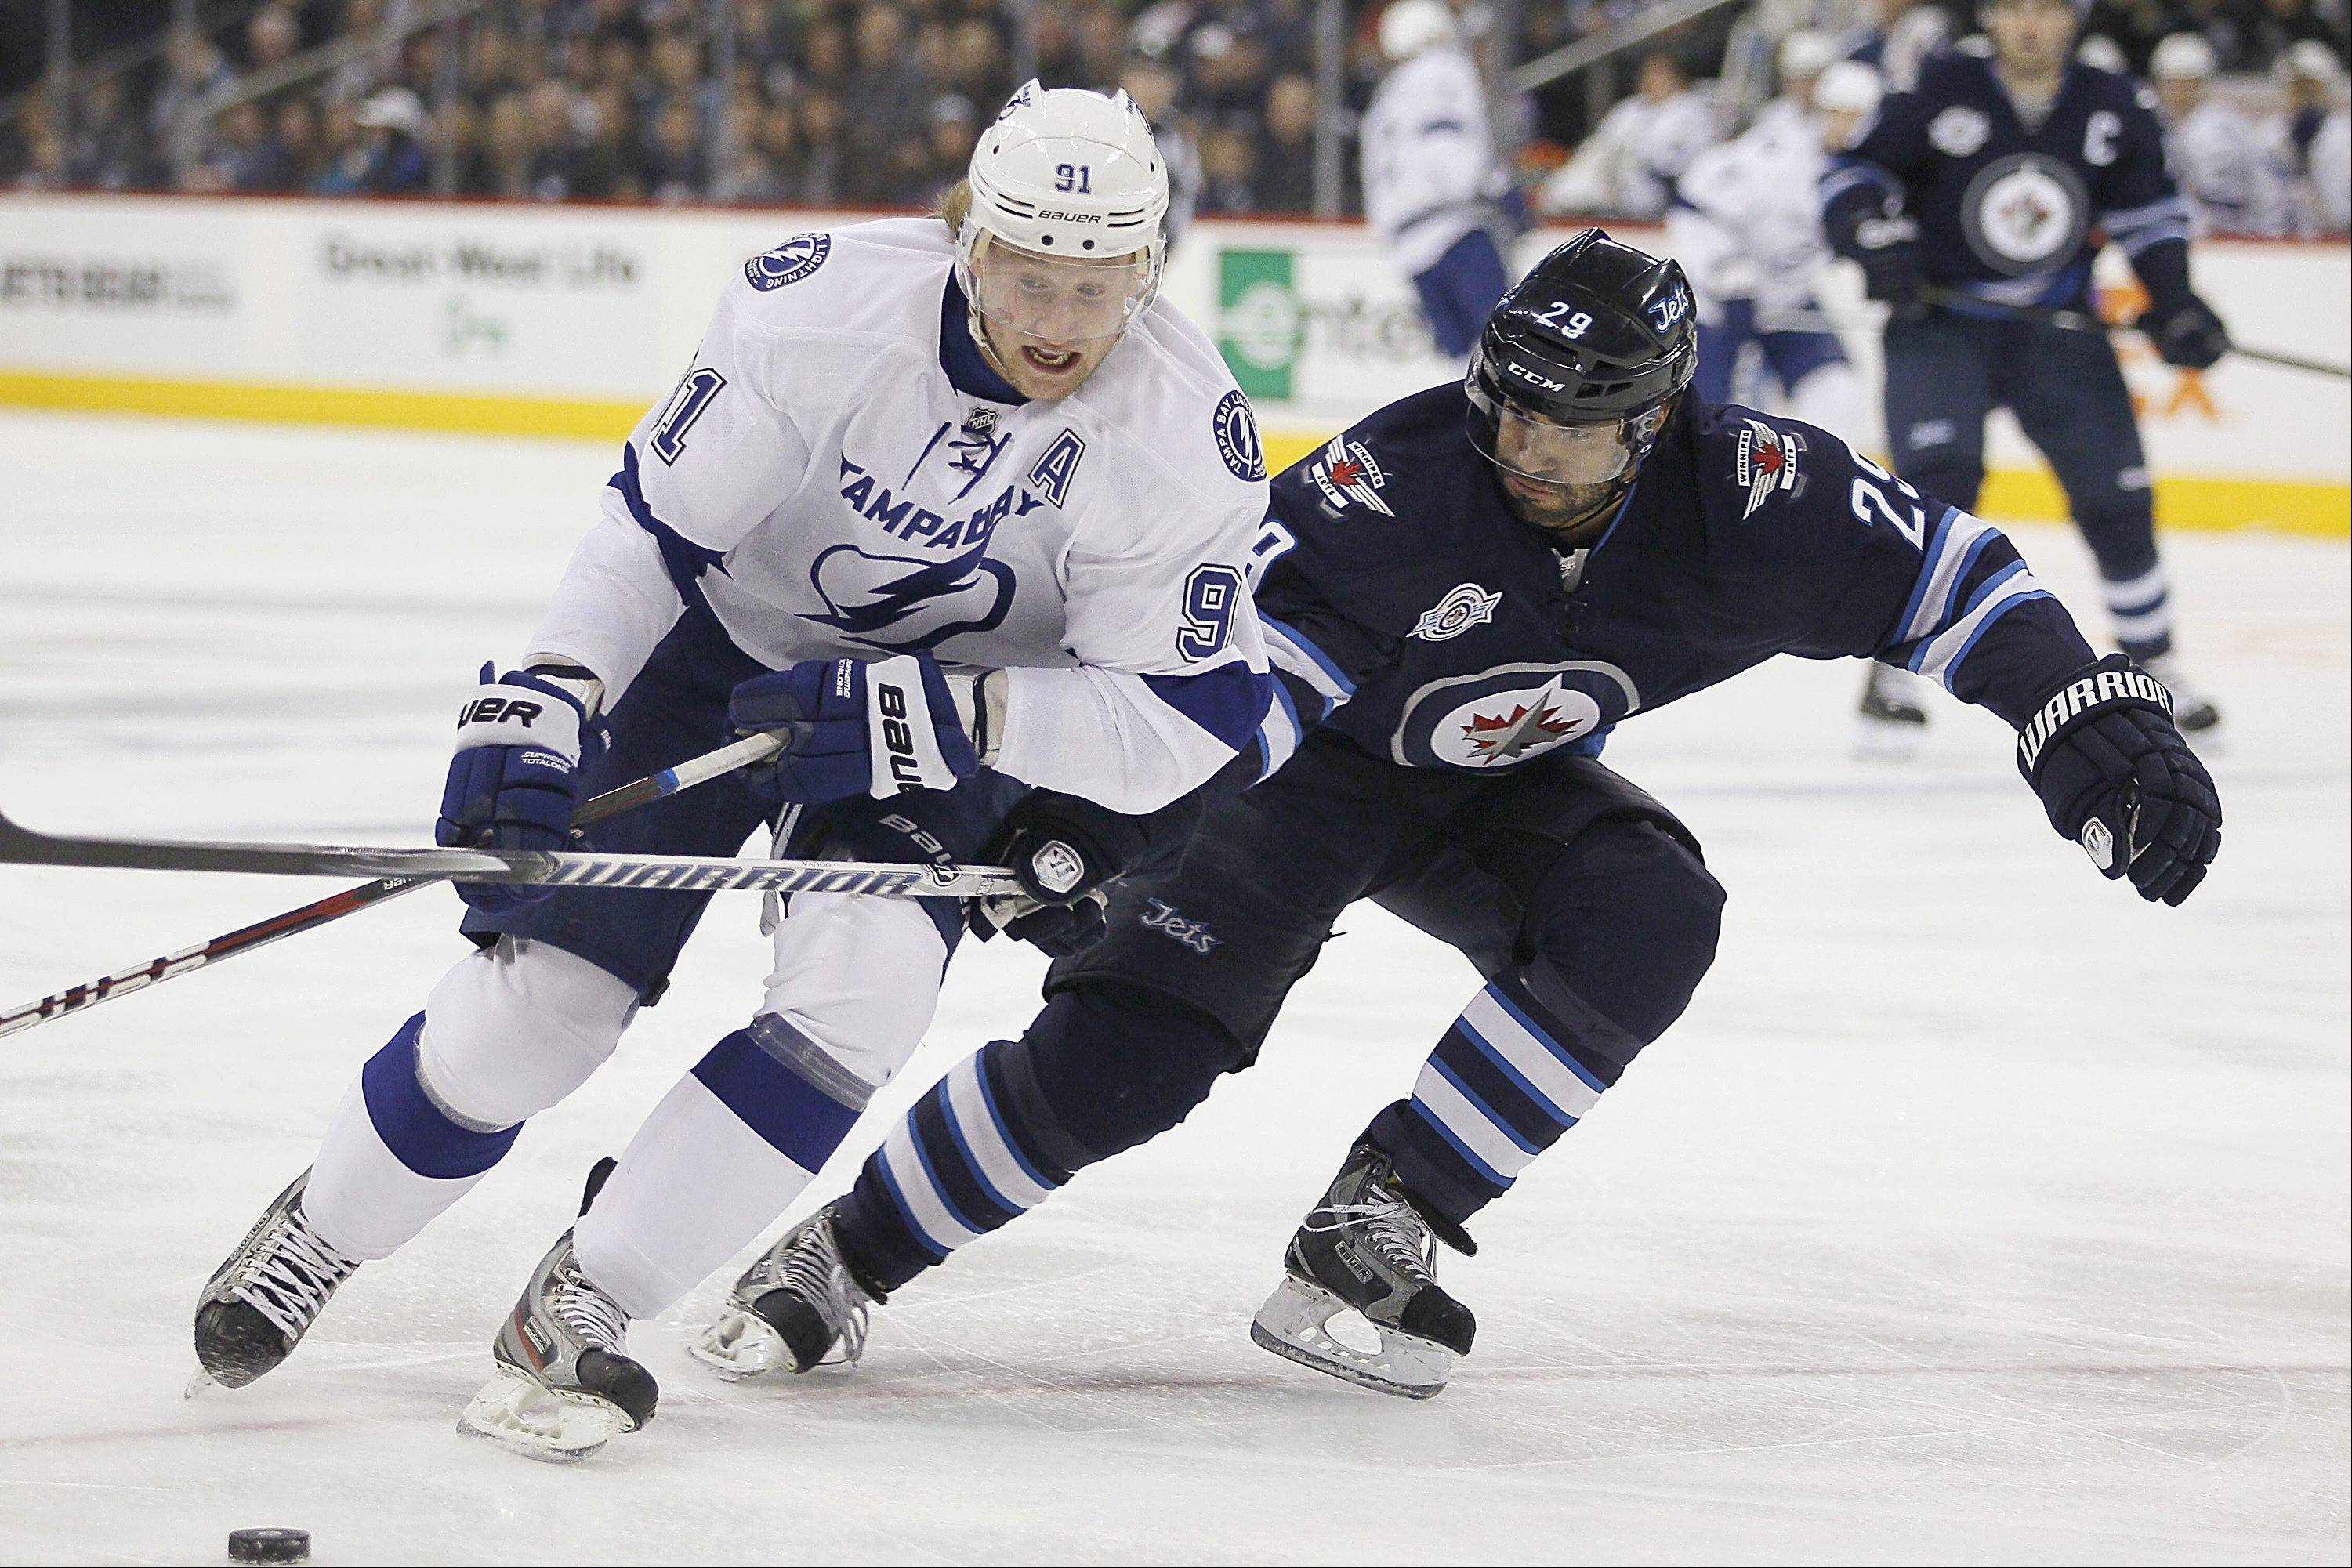 The Blackhawks acquired Winnipeg defenseman Johnny Oduya, right, before Monday's NHL trade deadline. He is considered a solid defenseman and a good stick handler.